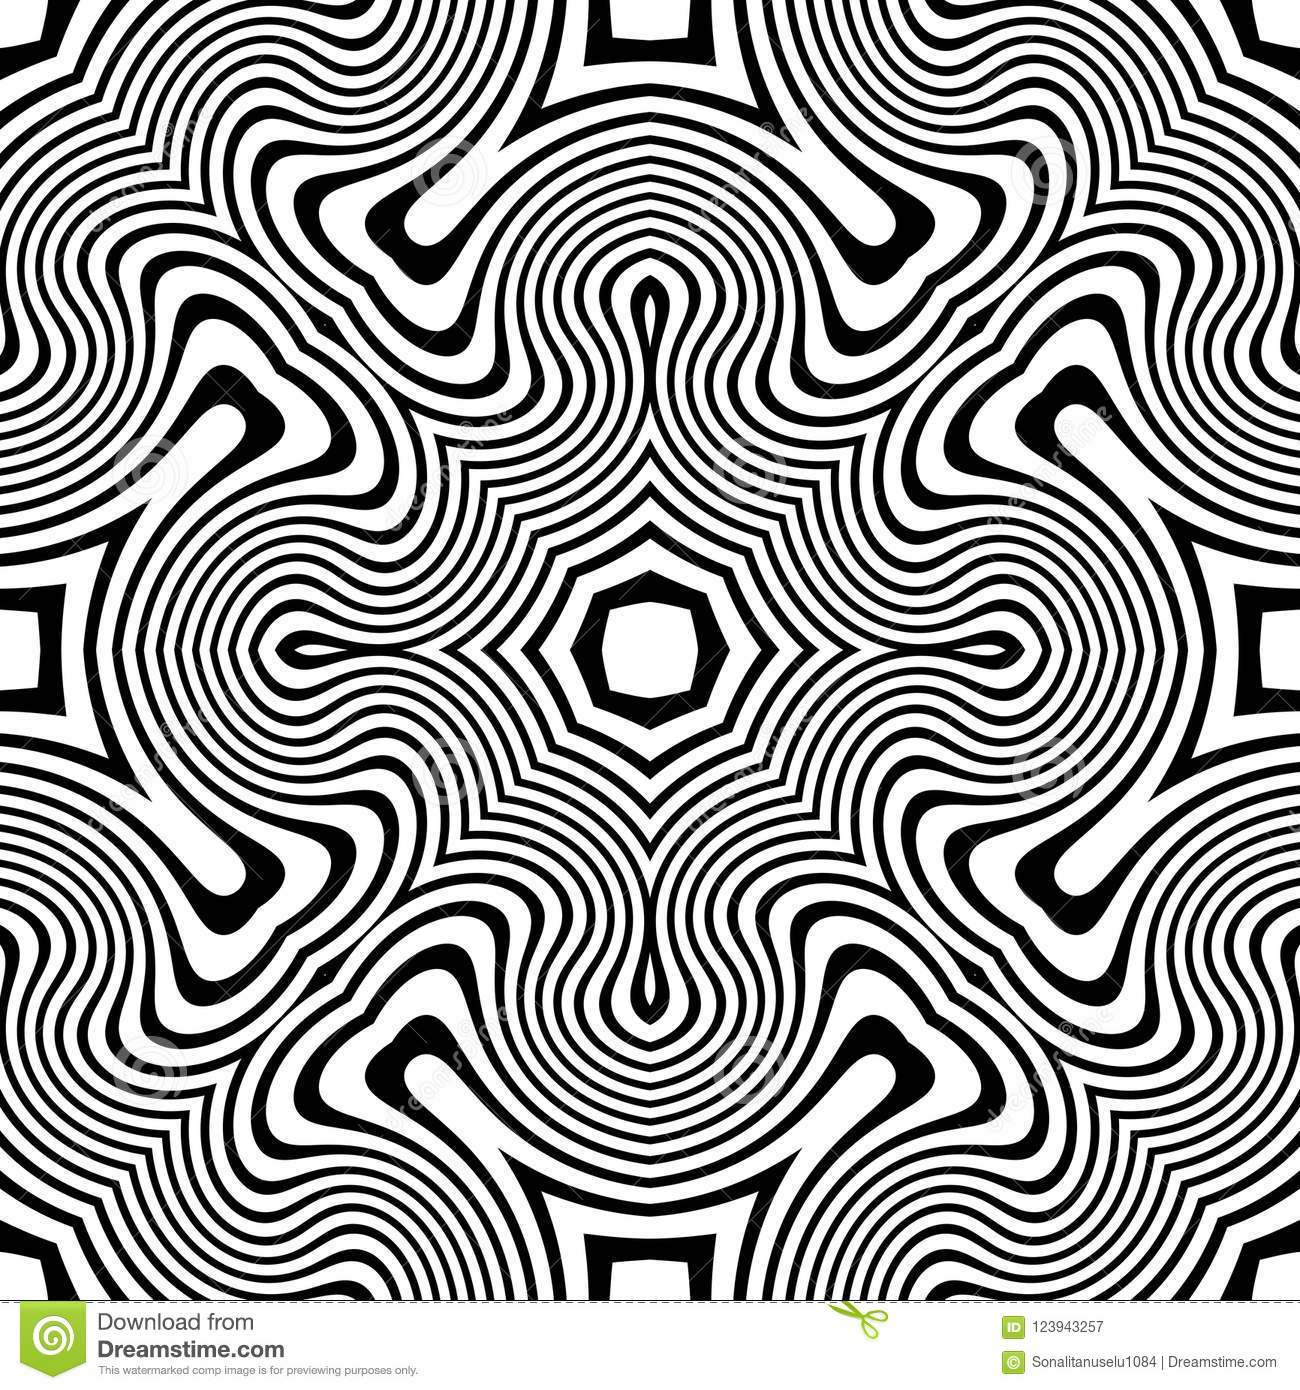 Vector Seamless Curve Pattern Black And White Abstract Background Wallpaper Vector Illustration Stock Vector Illustration Of Black Dots 123943257